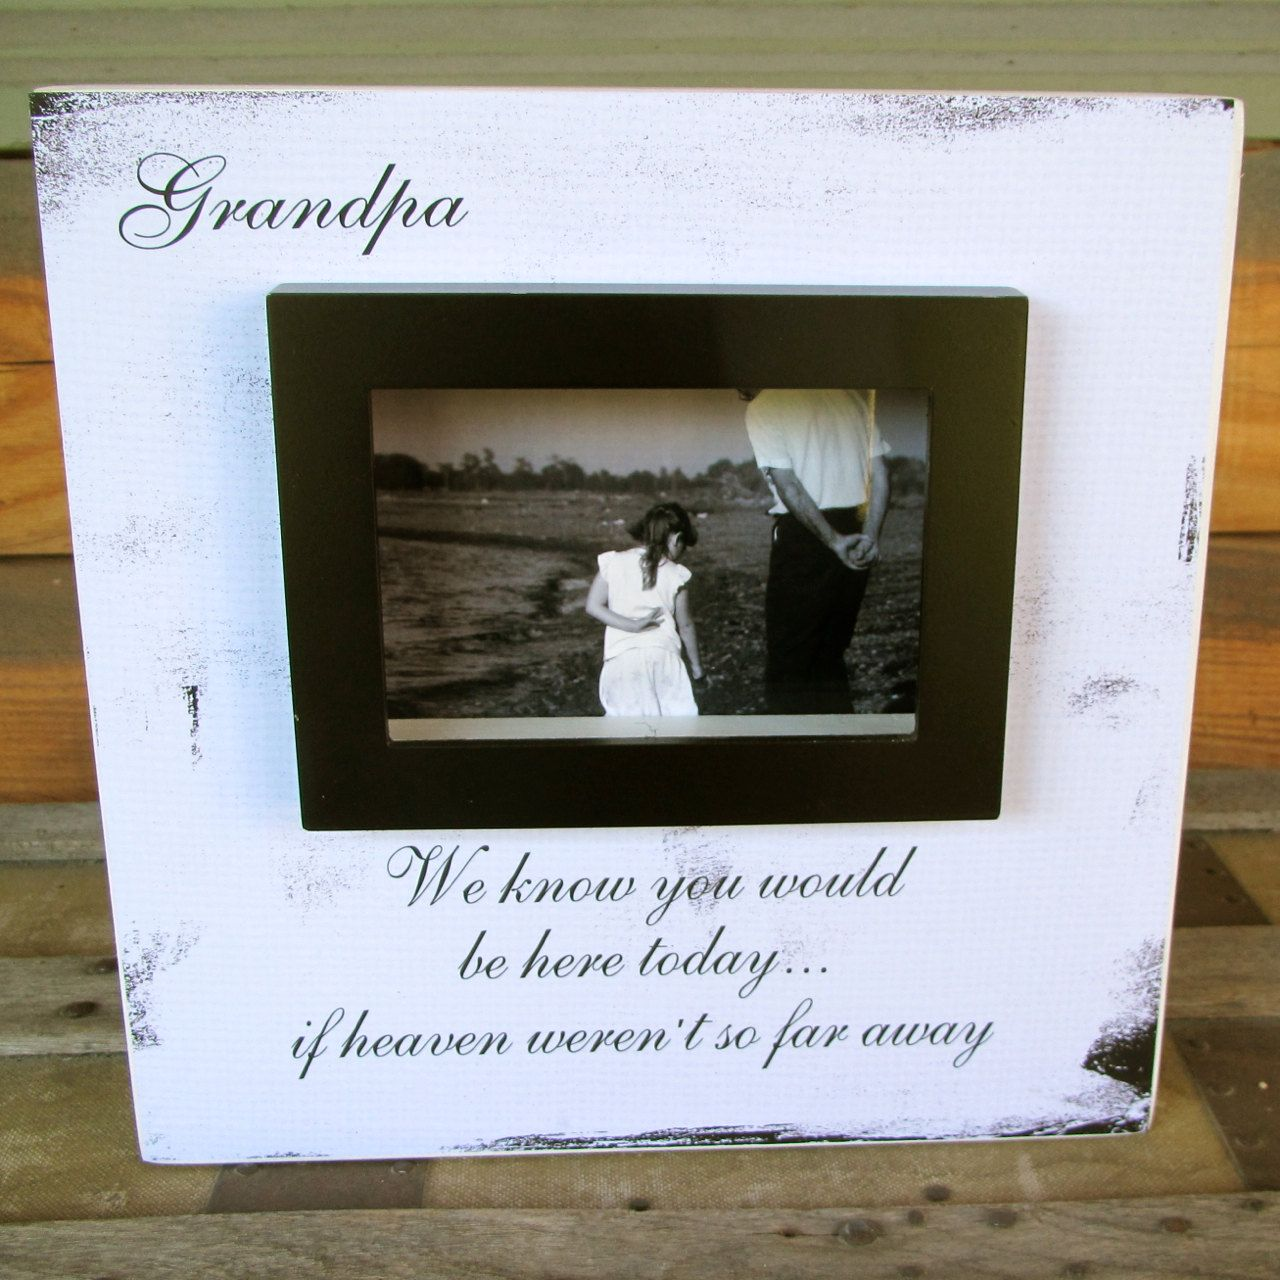 in loving memory grandpa grandma brother sister wedding picture frame sign we know you would be